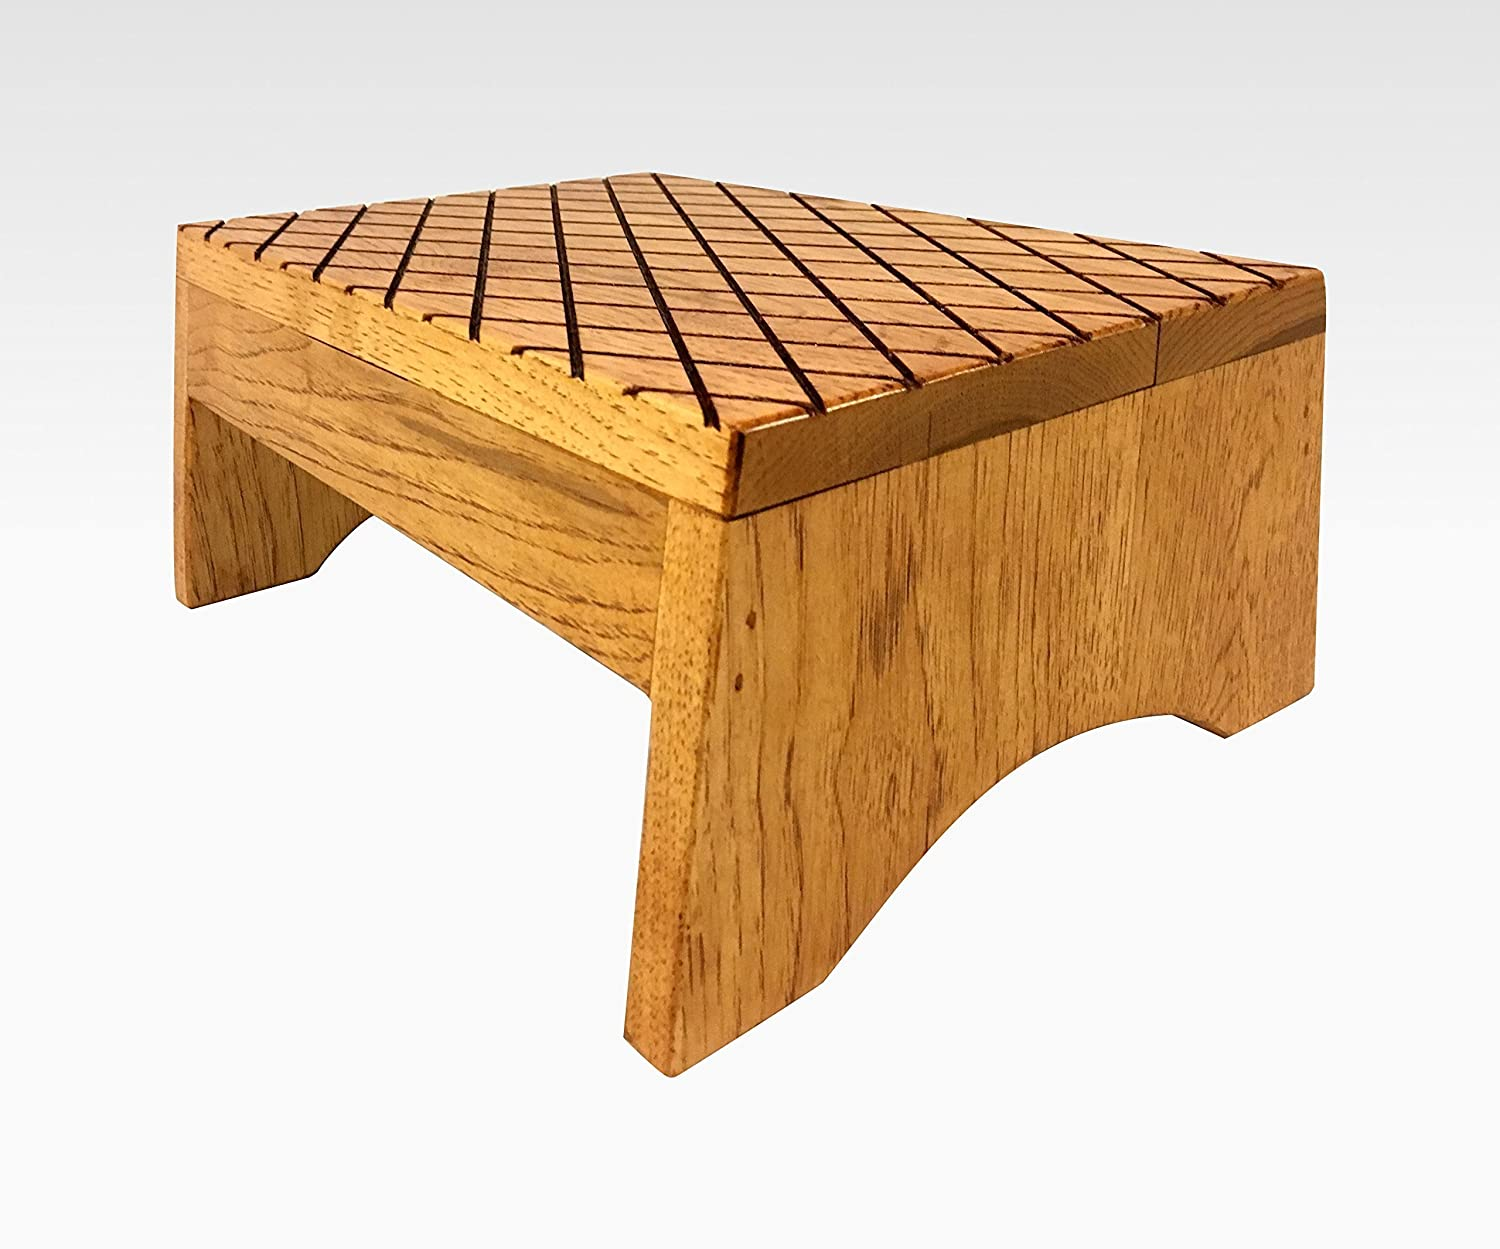 Excellent Amazon Com Wood Step Stool Footstool By Cw Furniture In Short Links Chair Design For Home Short Linksinfo